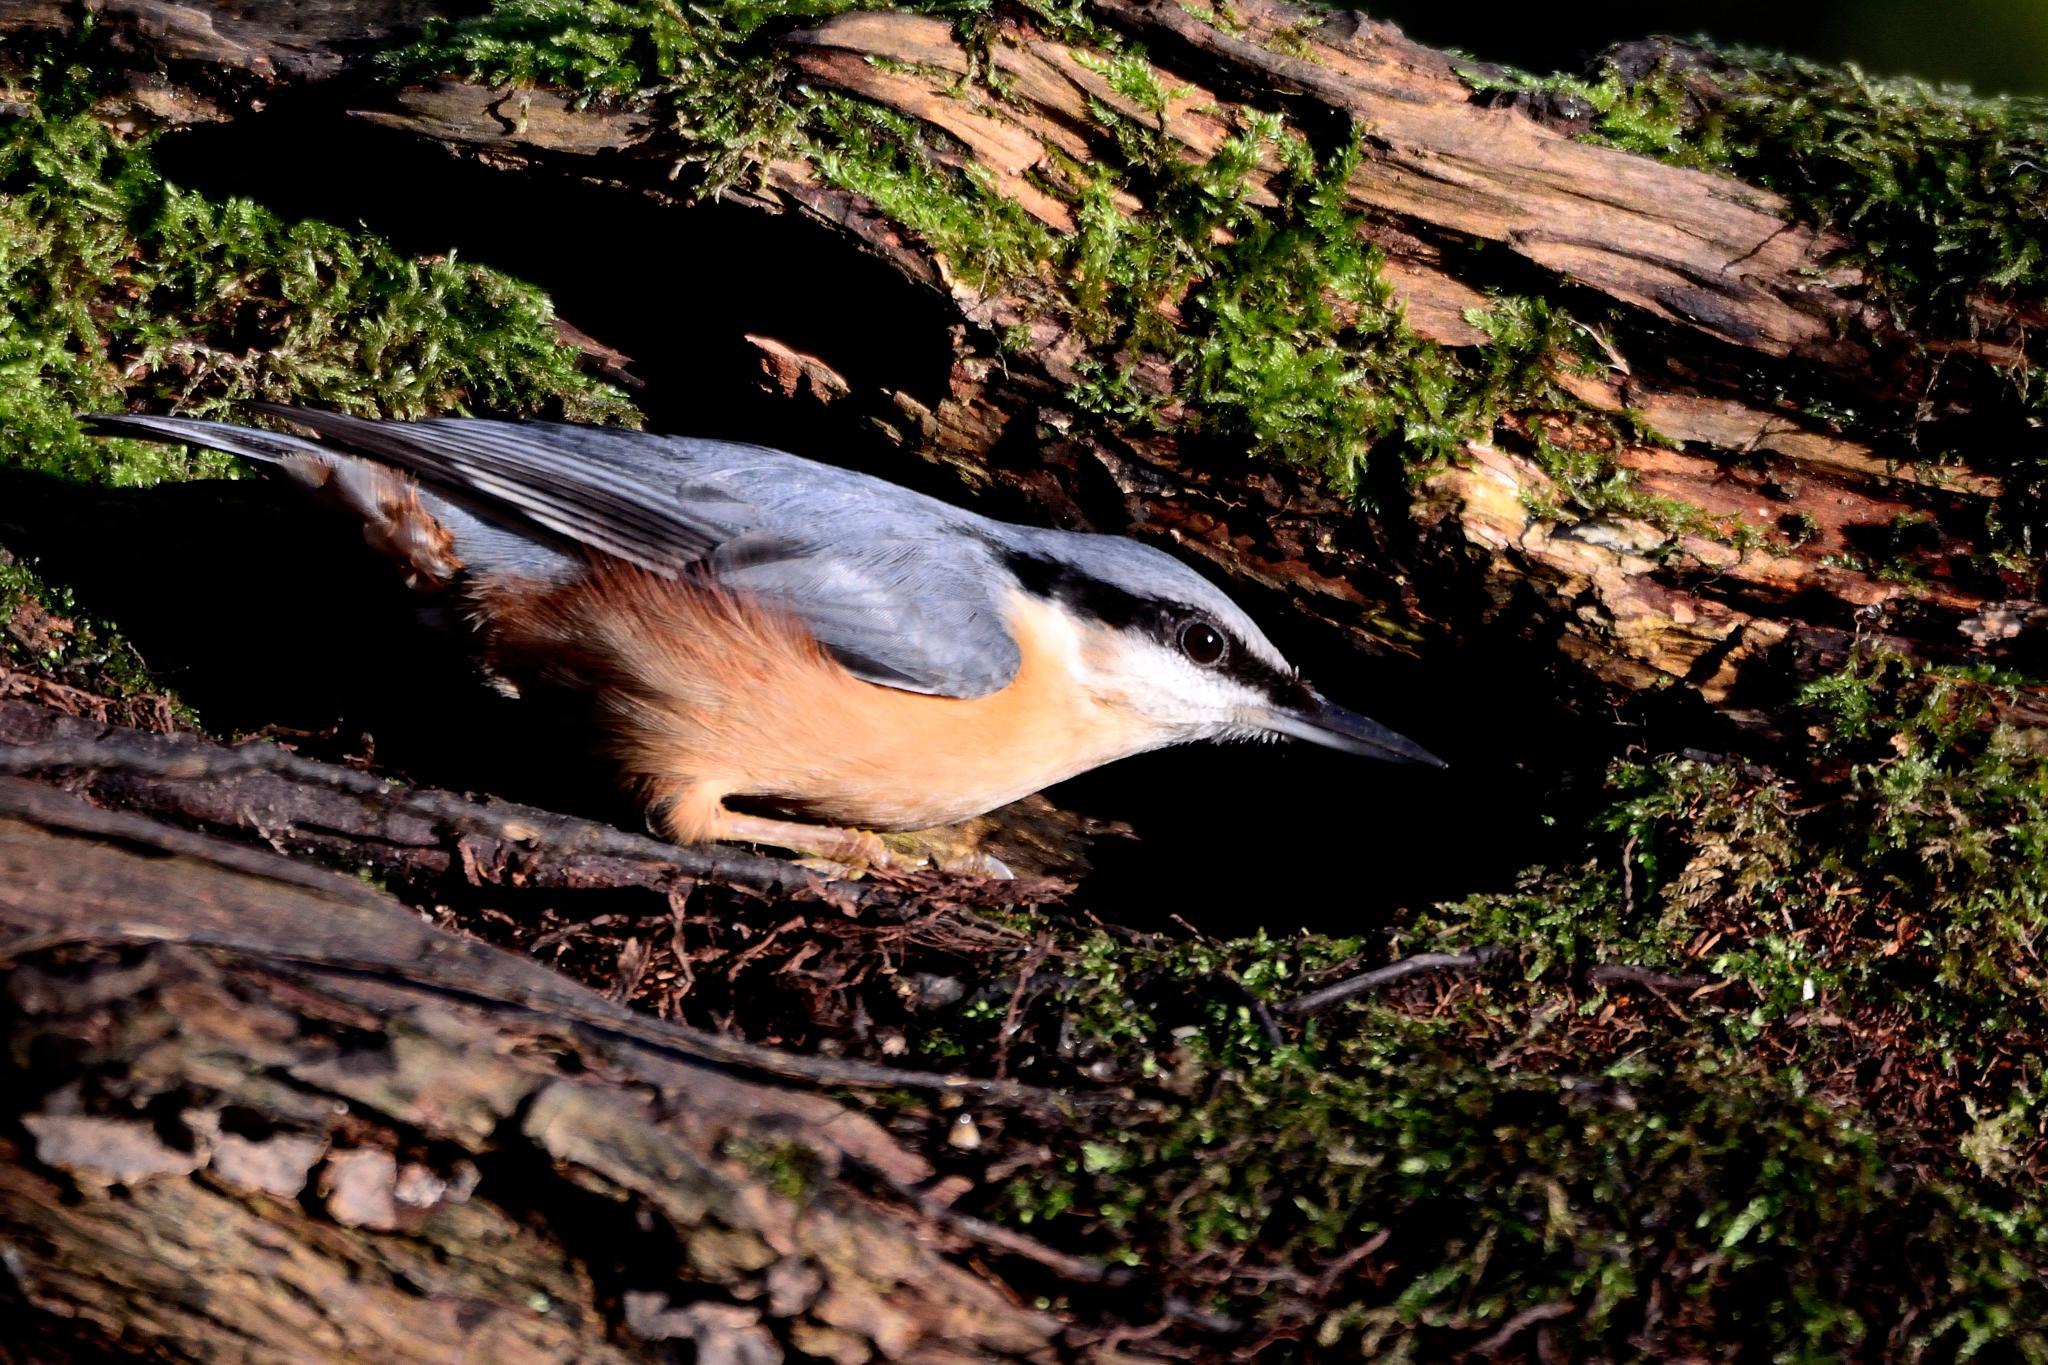 Nuthatch by andy.quinn.355